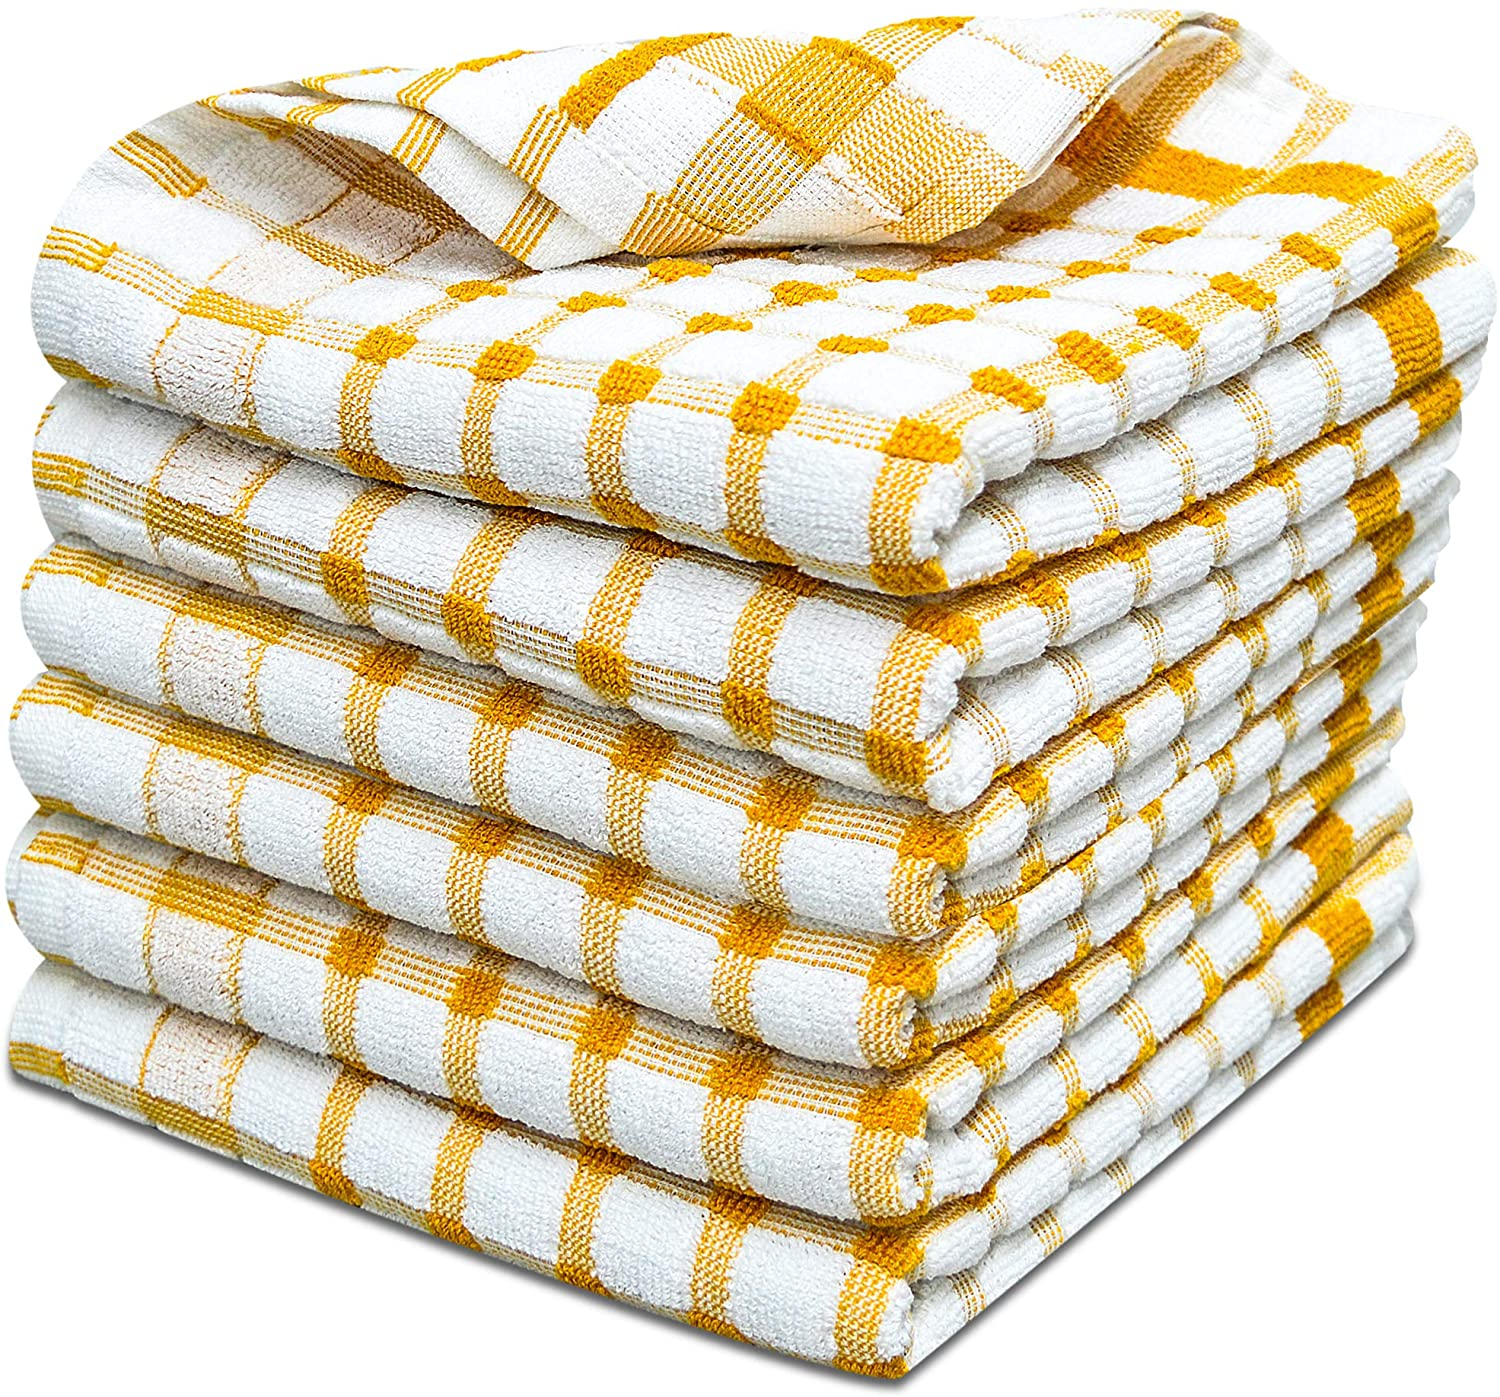 Yellow Kitchen Tea Towels Cotton Reusable Durable Checkered Towels - Towelogy